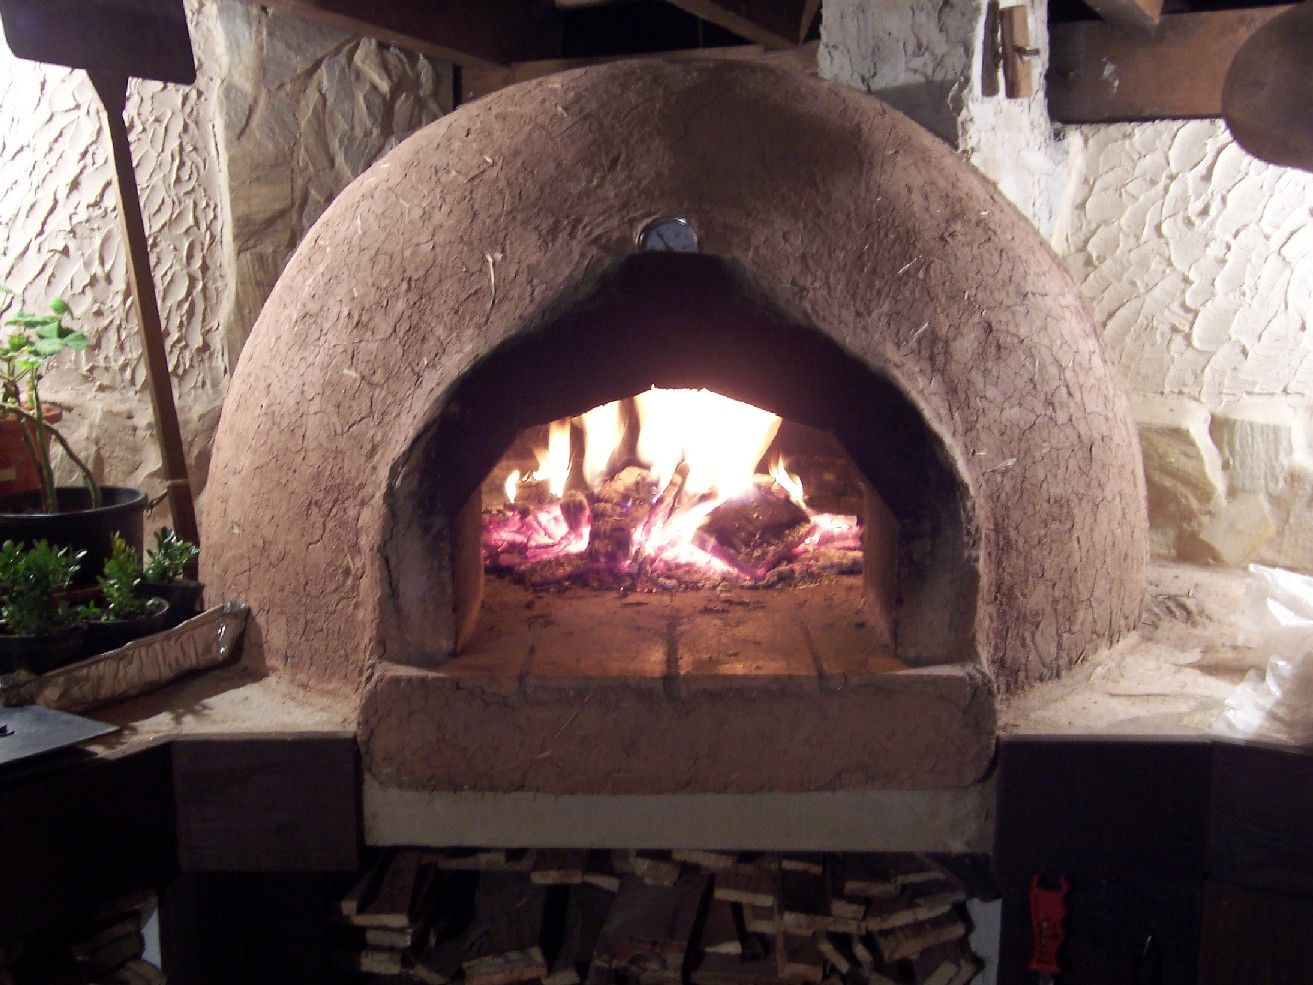 Outdoor Pizza Ovens, Outdoor Oven, Barbecue, Brick Ovens, Outdoor Kitchens,  Pizzas, Outdoor Living, Roasters For Garden, Do It Yourself